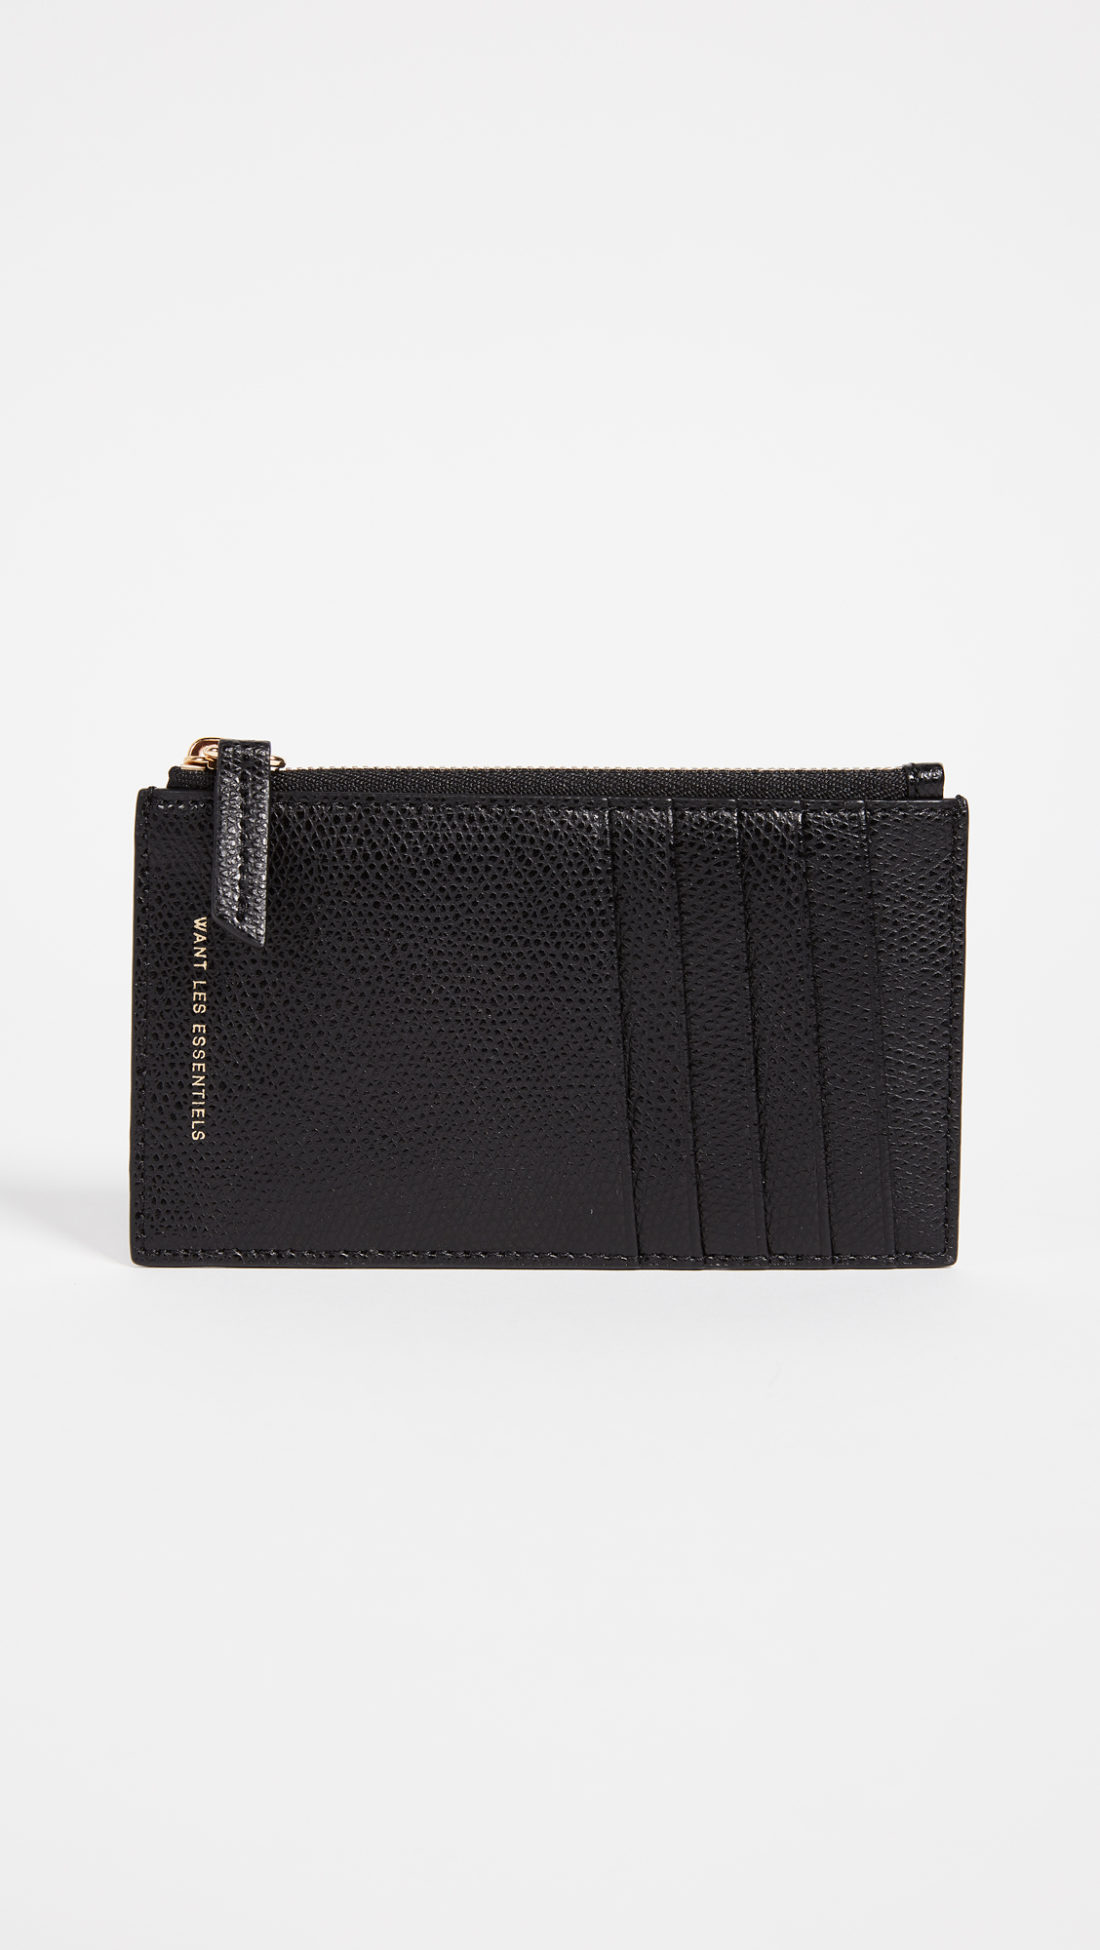 WANT LES ESSENTIELS Adana Zipped Card Holder - Shopbop sale recommendations by popular North Carolina fashion blogger Glitter, Inc.